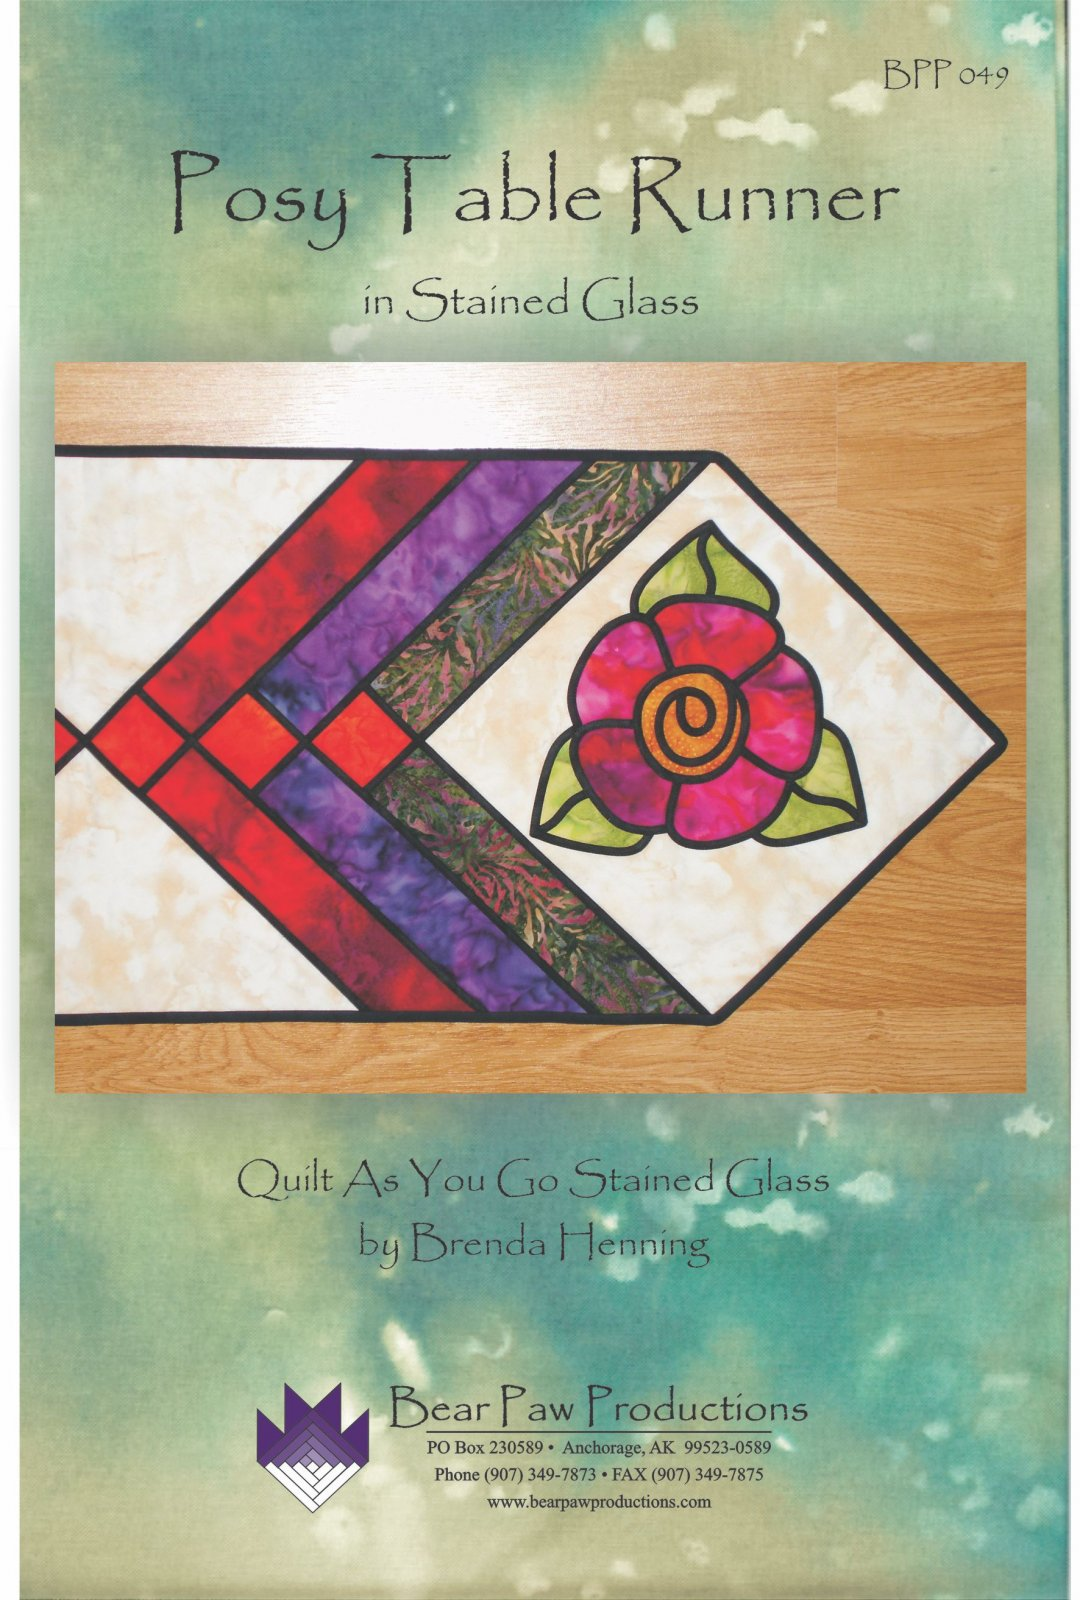 Posy Table Runner in Stained Glass